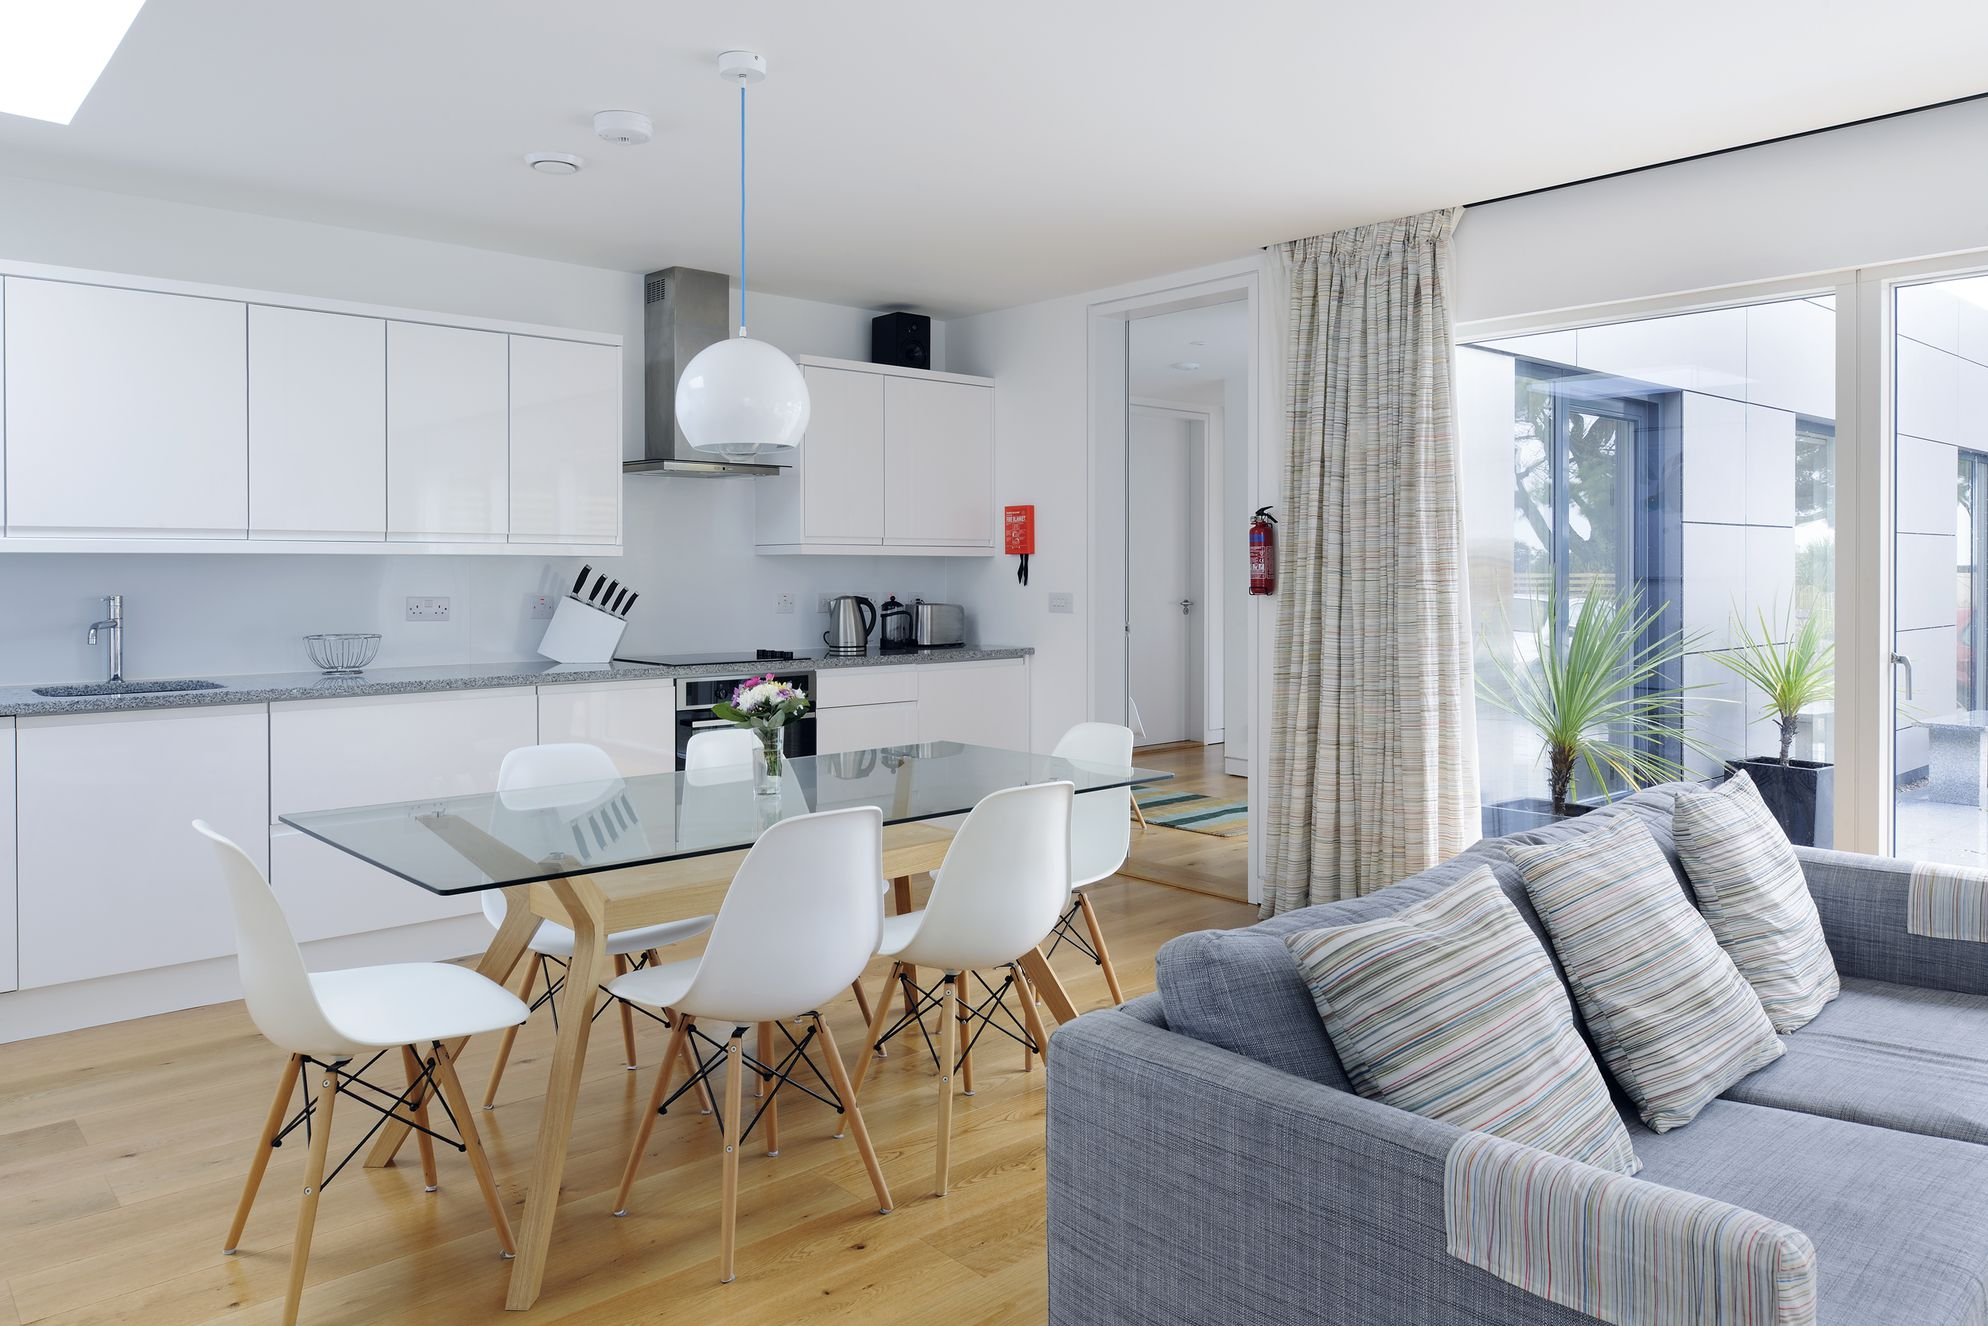 Modern, spacious and light-filled open plan kitchen with glass table and white chairs